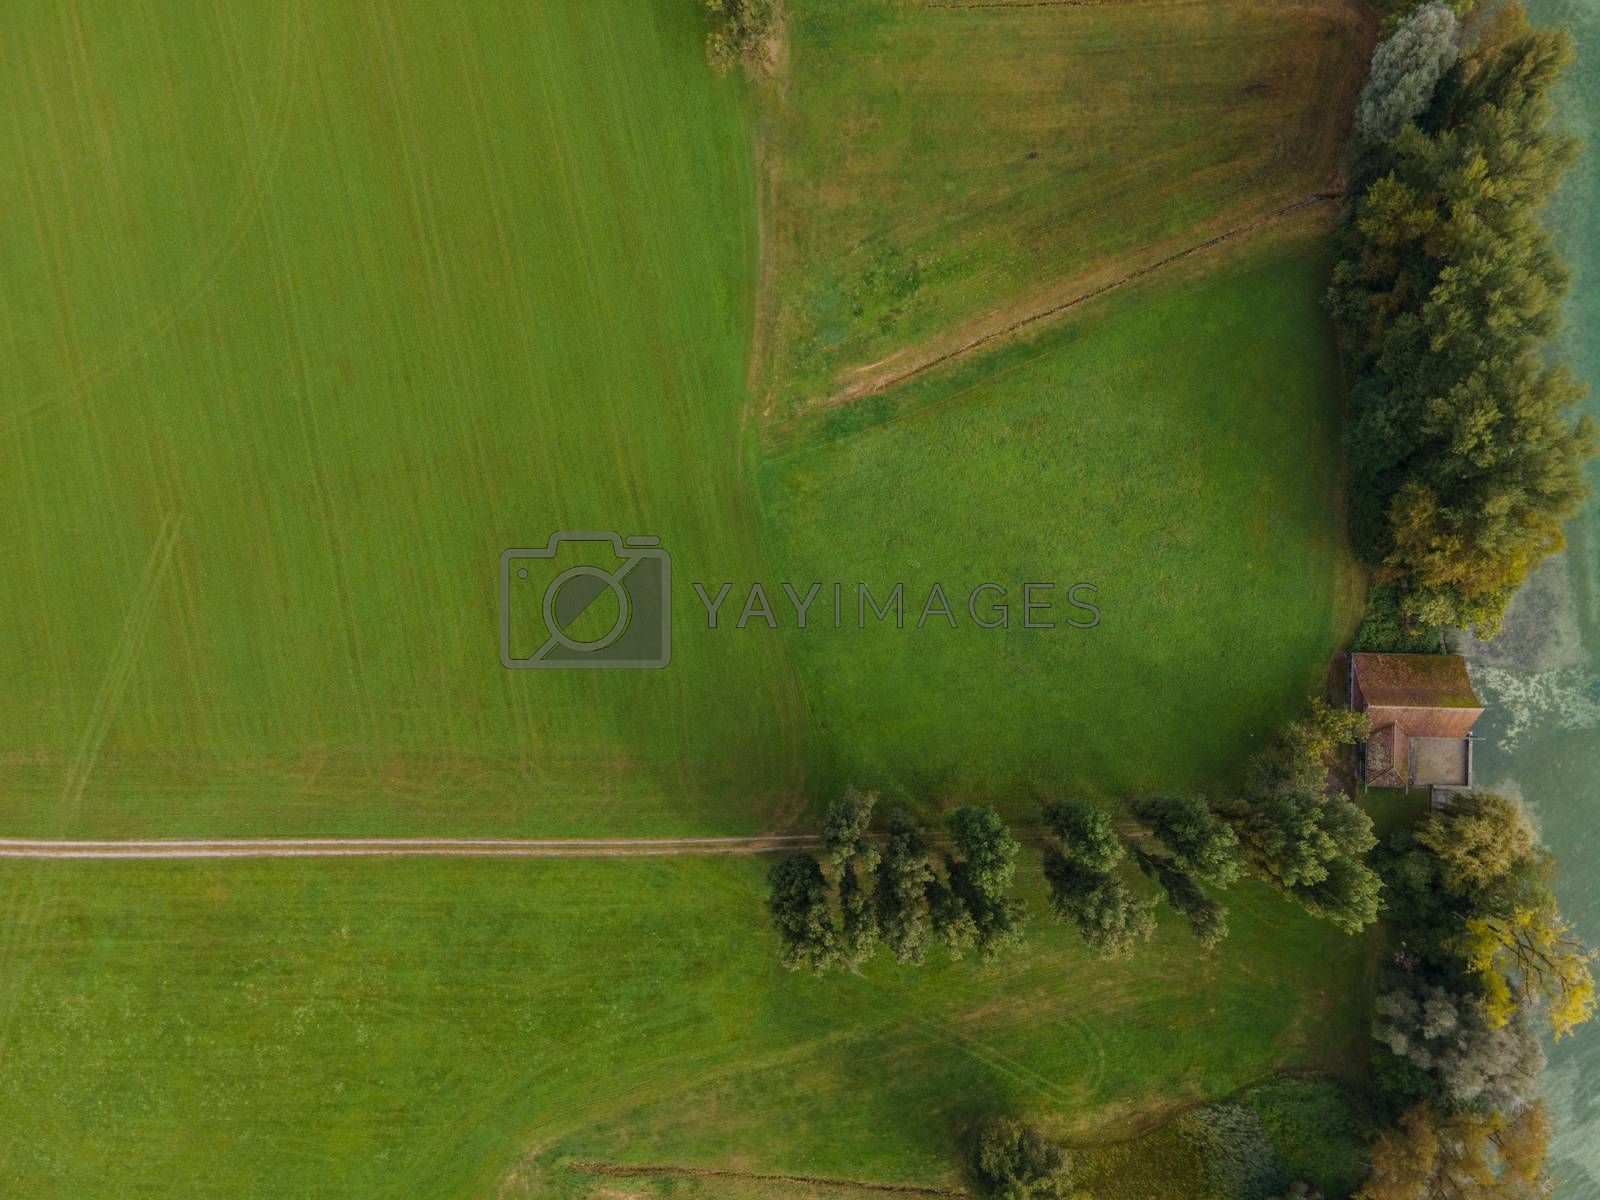 Drone shot of pasture near a lake. Copy space